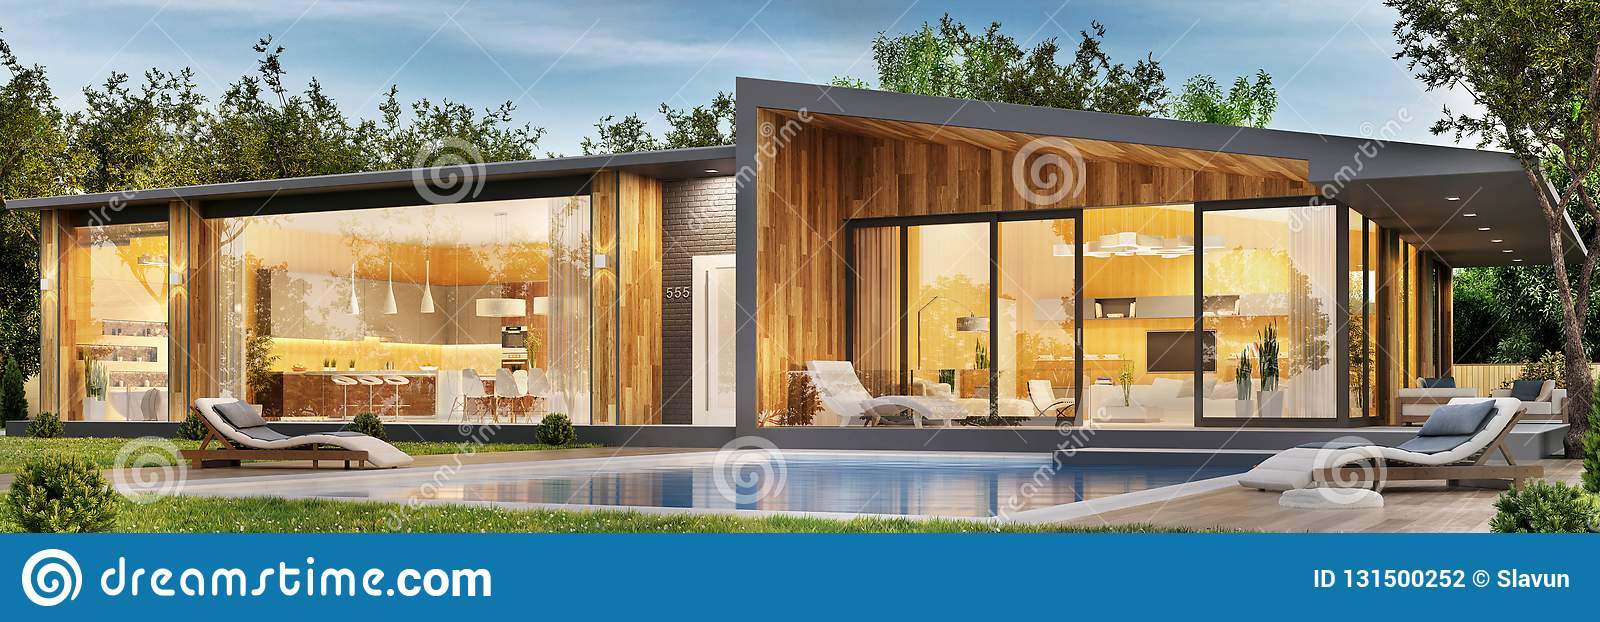 Modern House Plans With Pool Exterior And Interior Design Of A Modern House With A Pool Stock